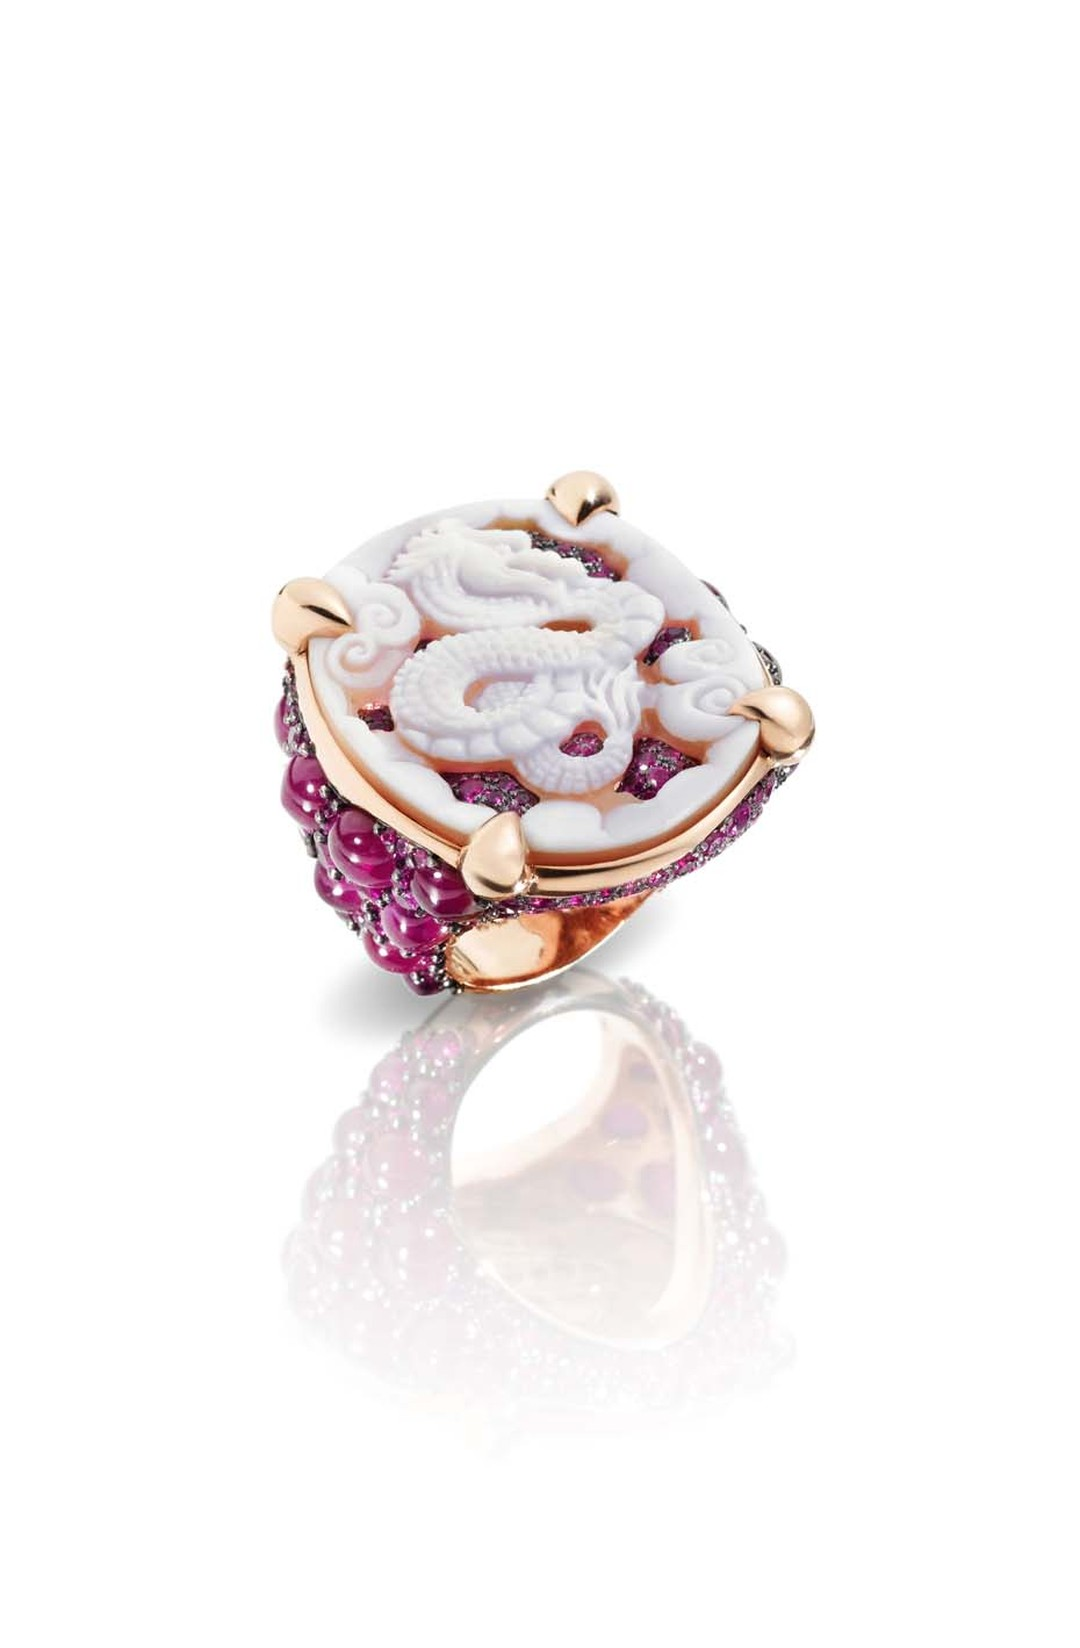 Pomellato Pom Pom Dragon ring in rose gold featuring a band covered with cabochon-cut rubies.